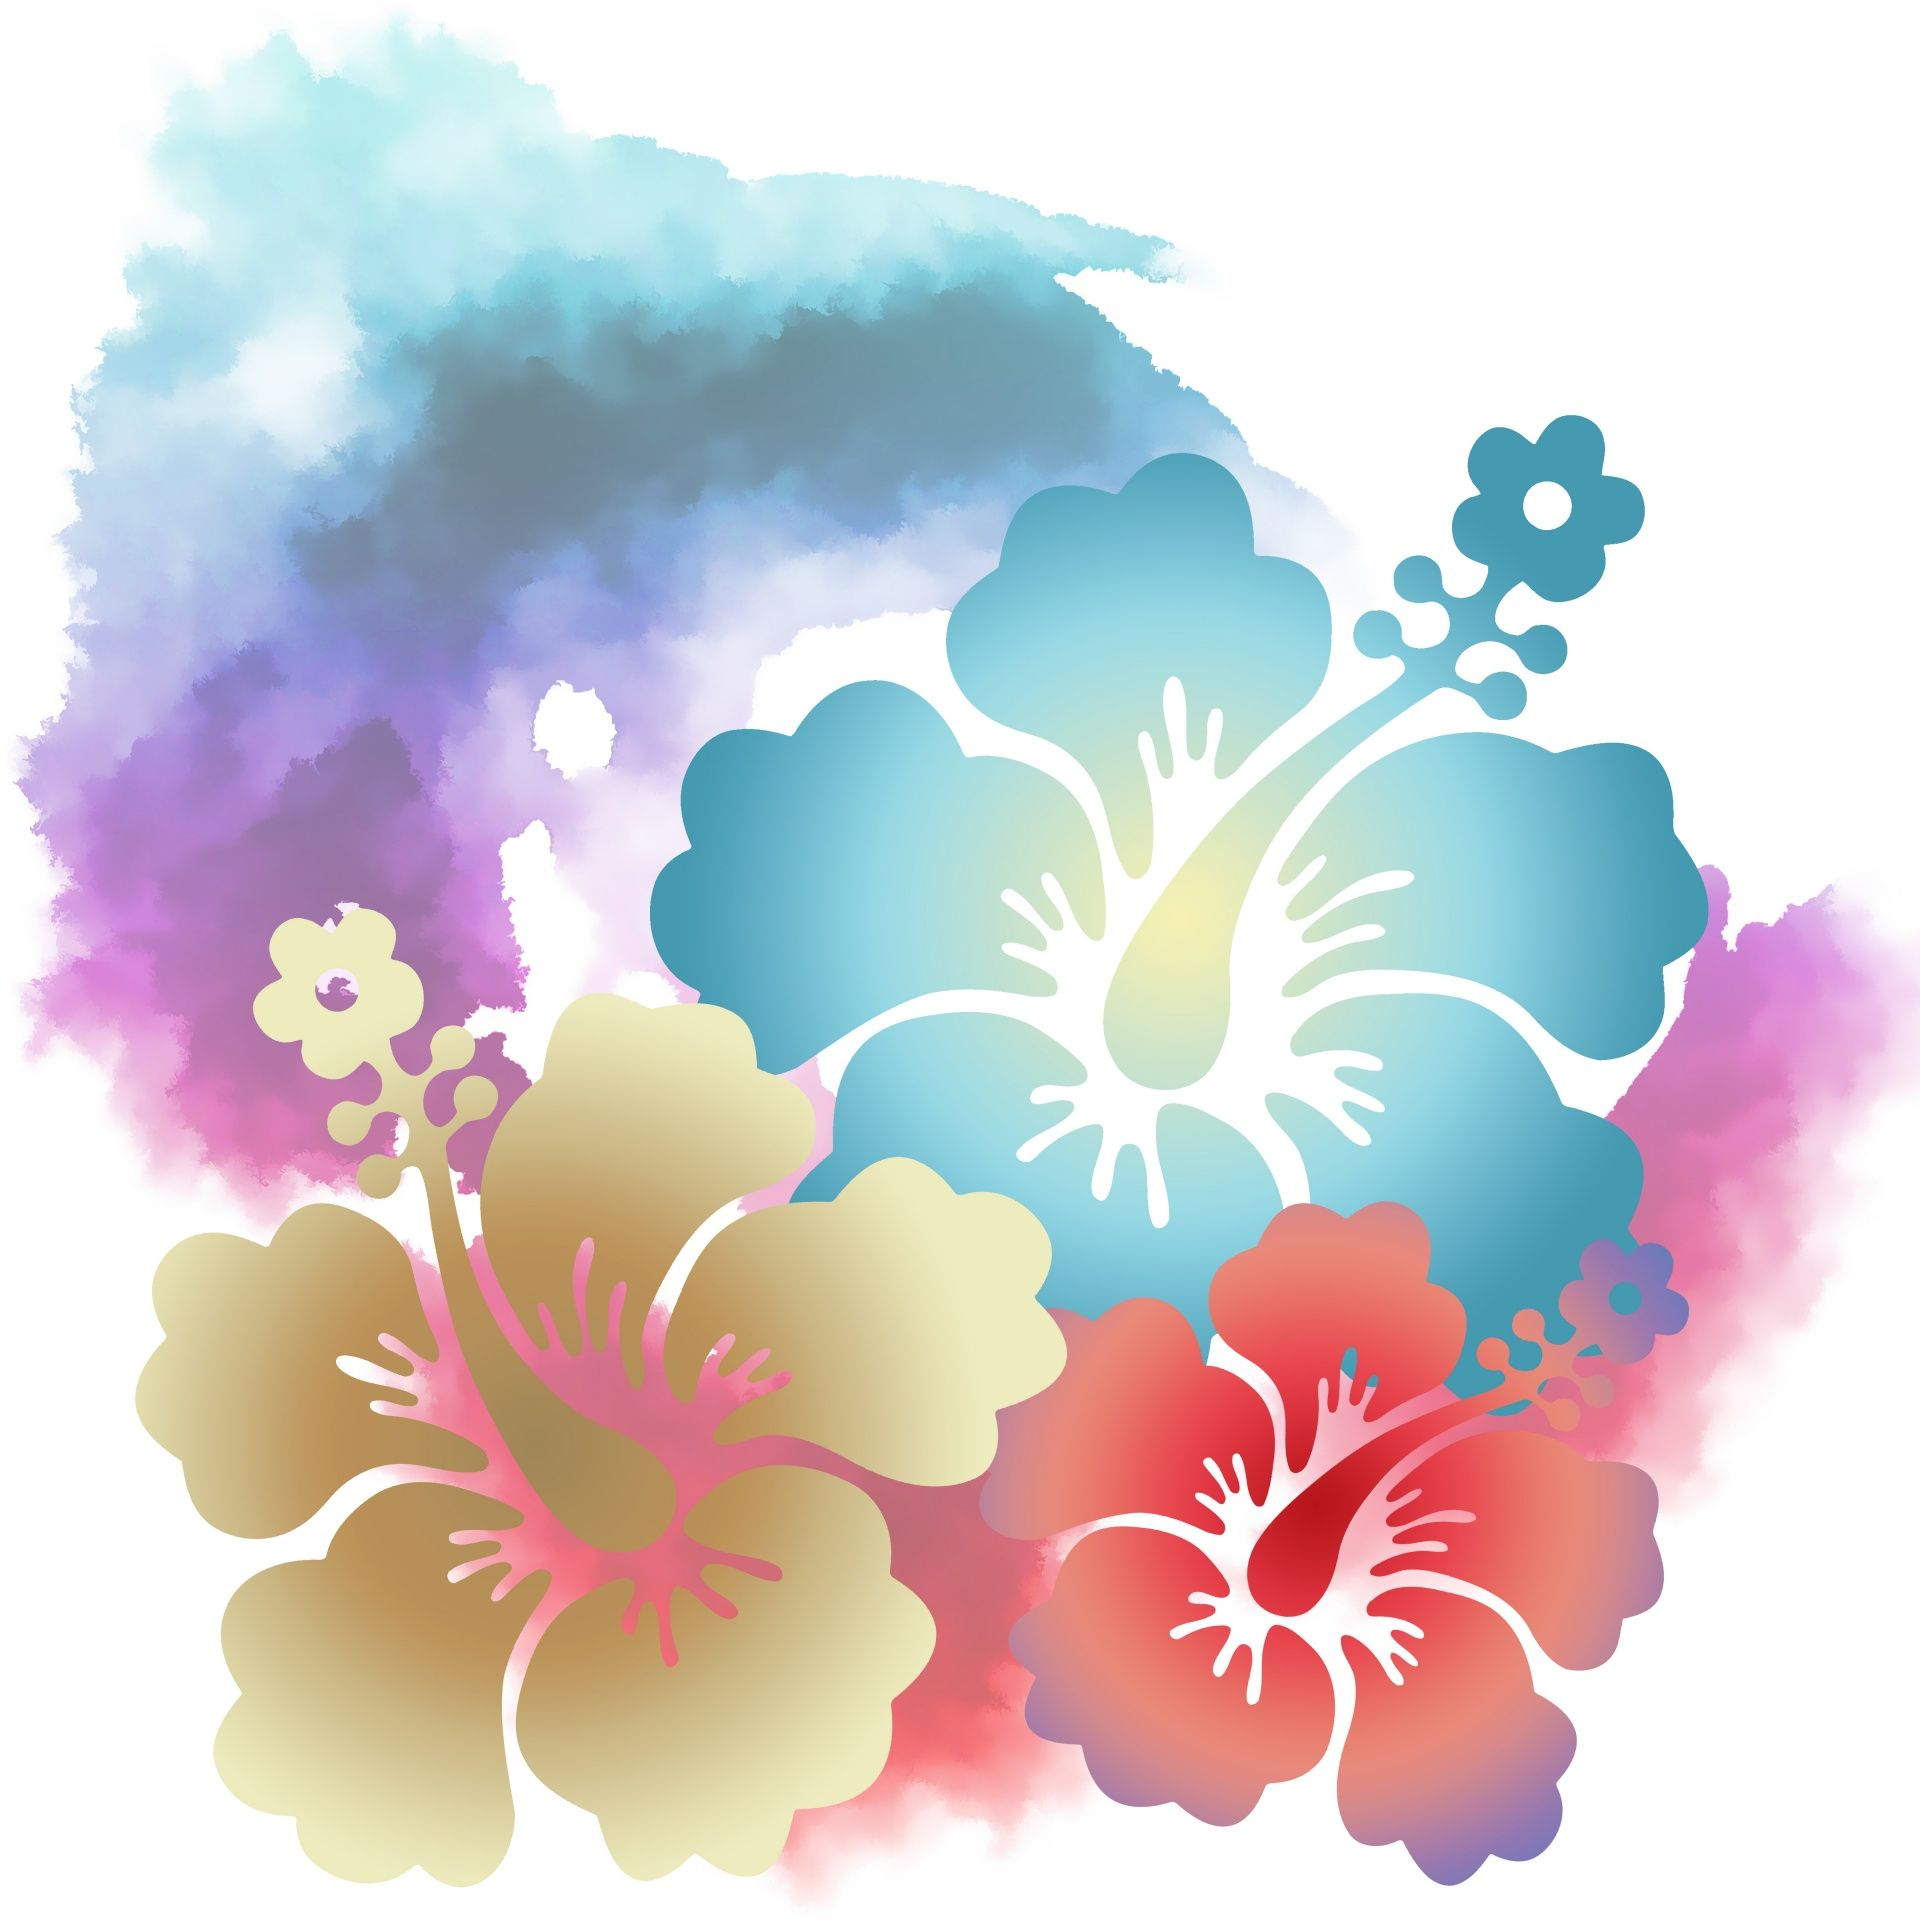 Hawaiian Hibiscus Flower Background Flower Backgrounds Hibiscus Flowers Backgrounds Free